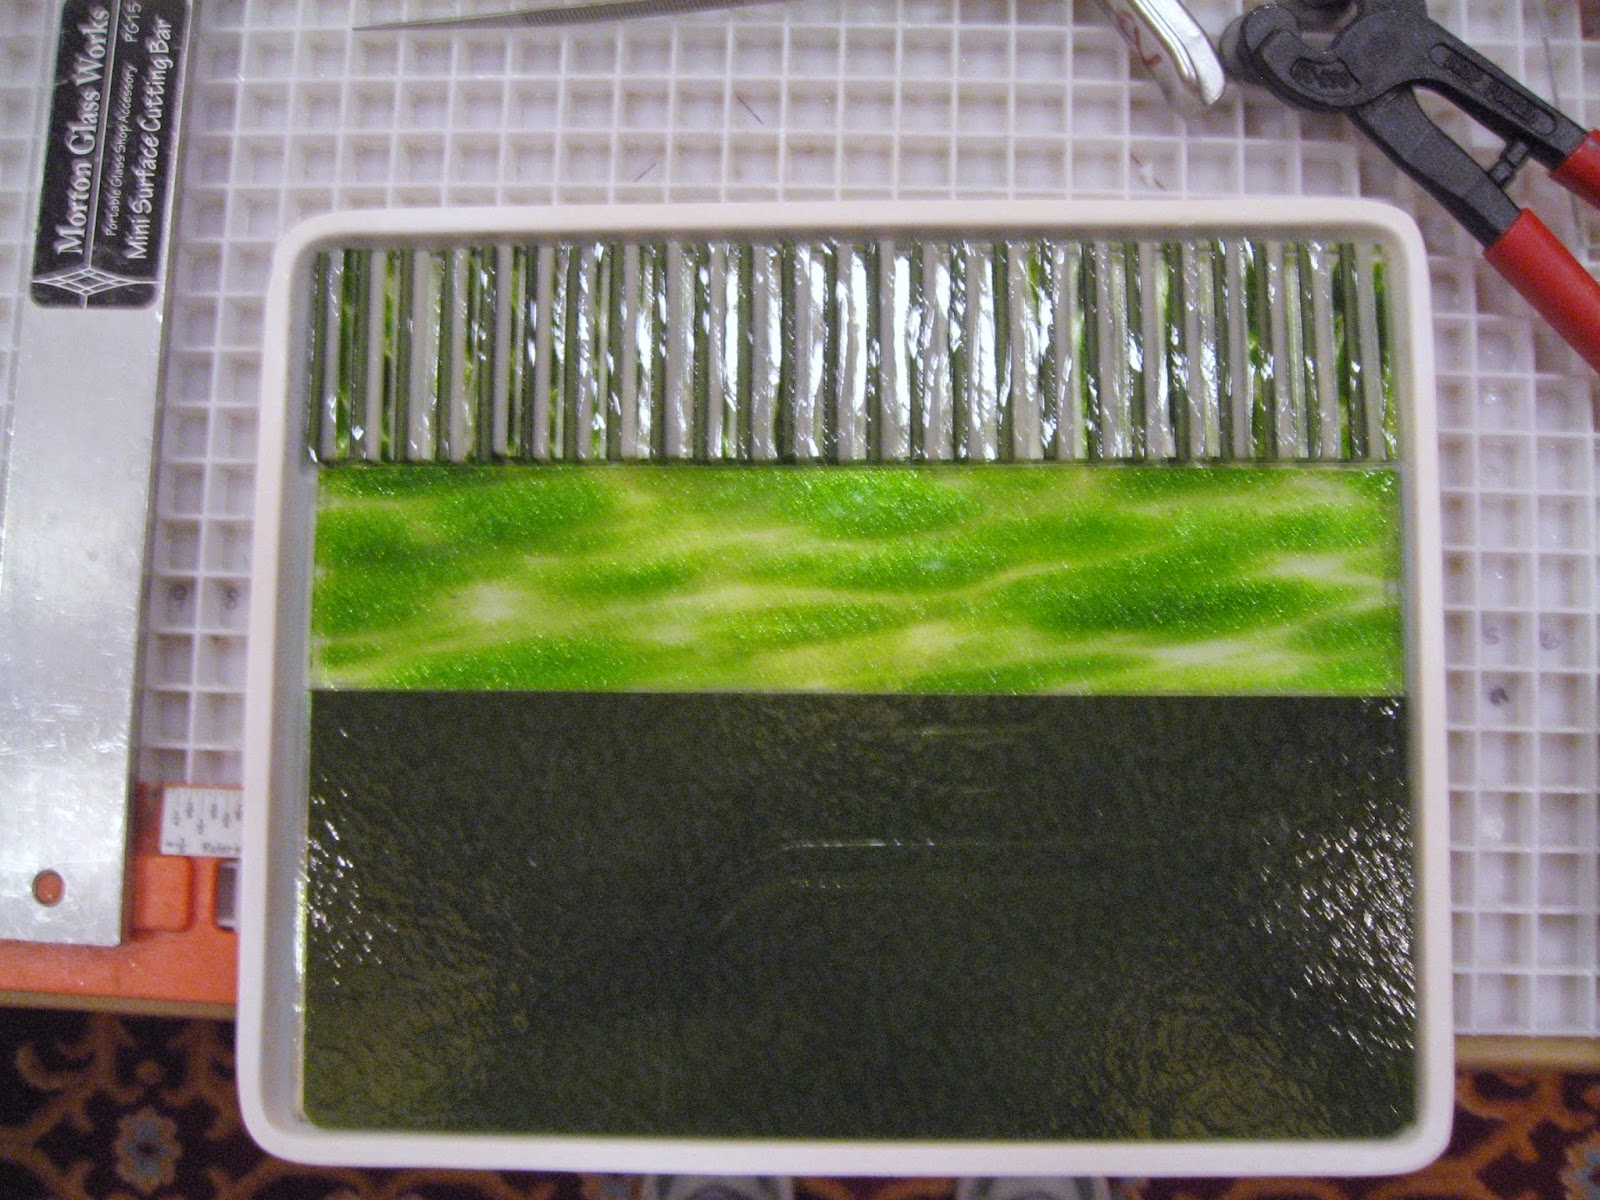 Roll-up panel prior to fusing